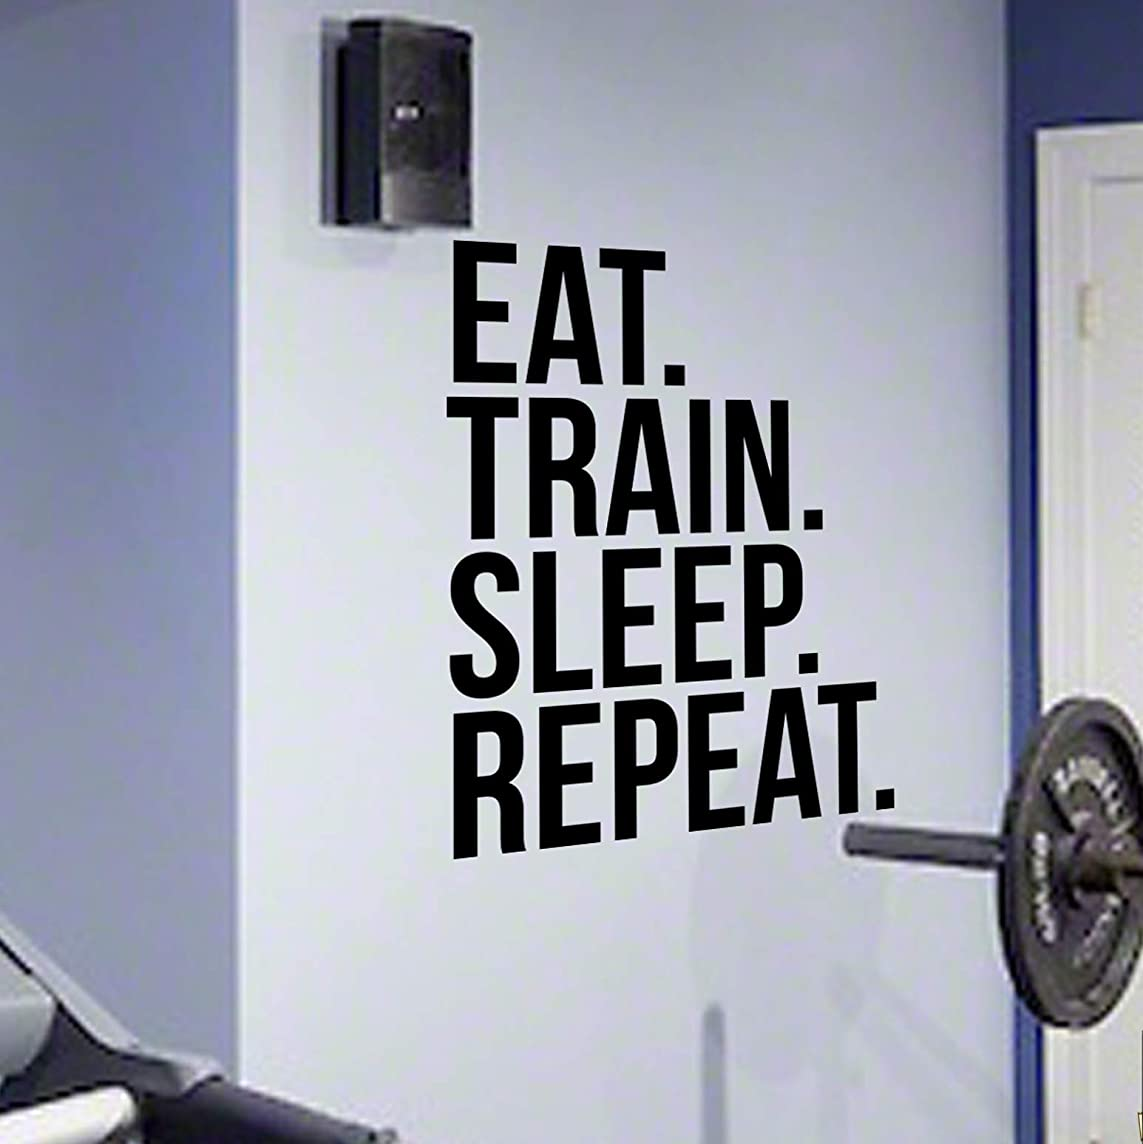 EAT TRAIN SLEEP REPEAT Gym Wall Decal Motivational Quote-Health and Fitness Spinning Kettlebell Workout Boxing UFC MMA